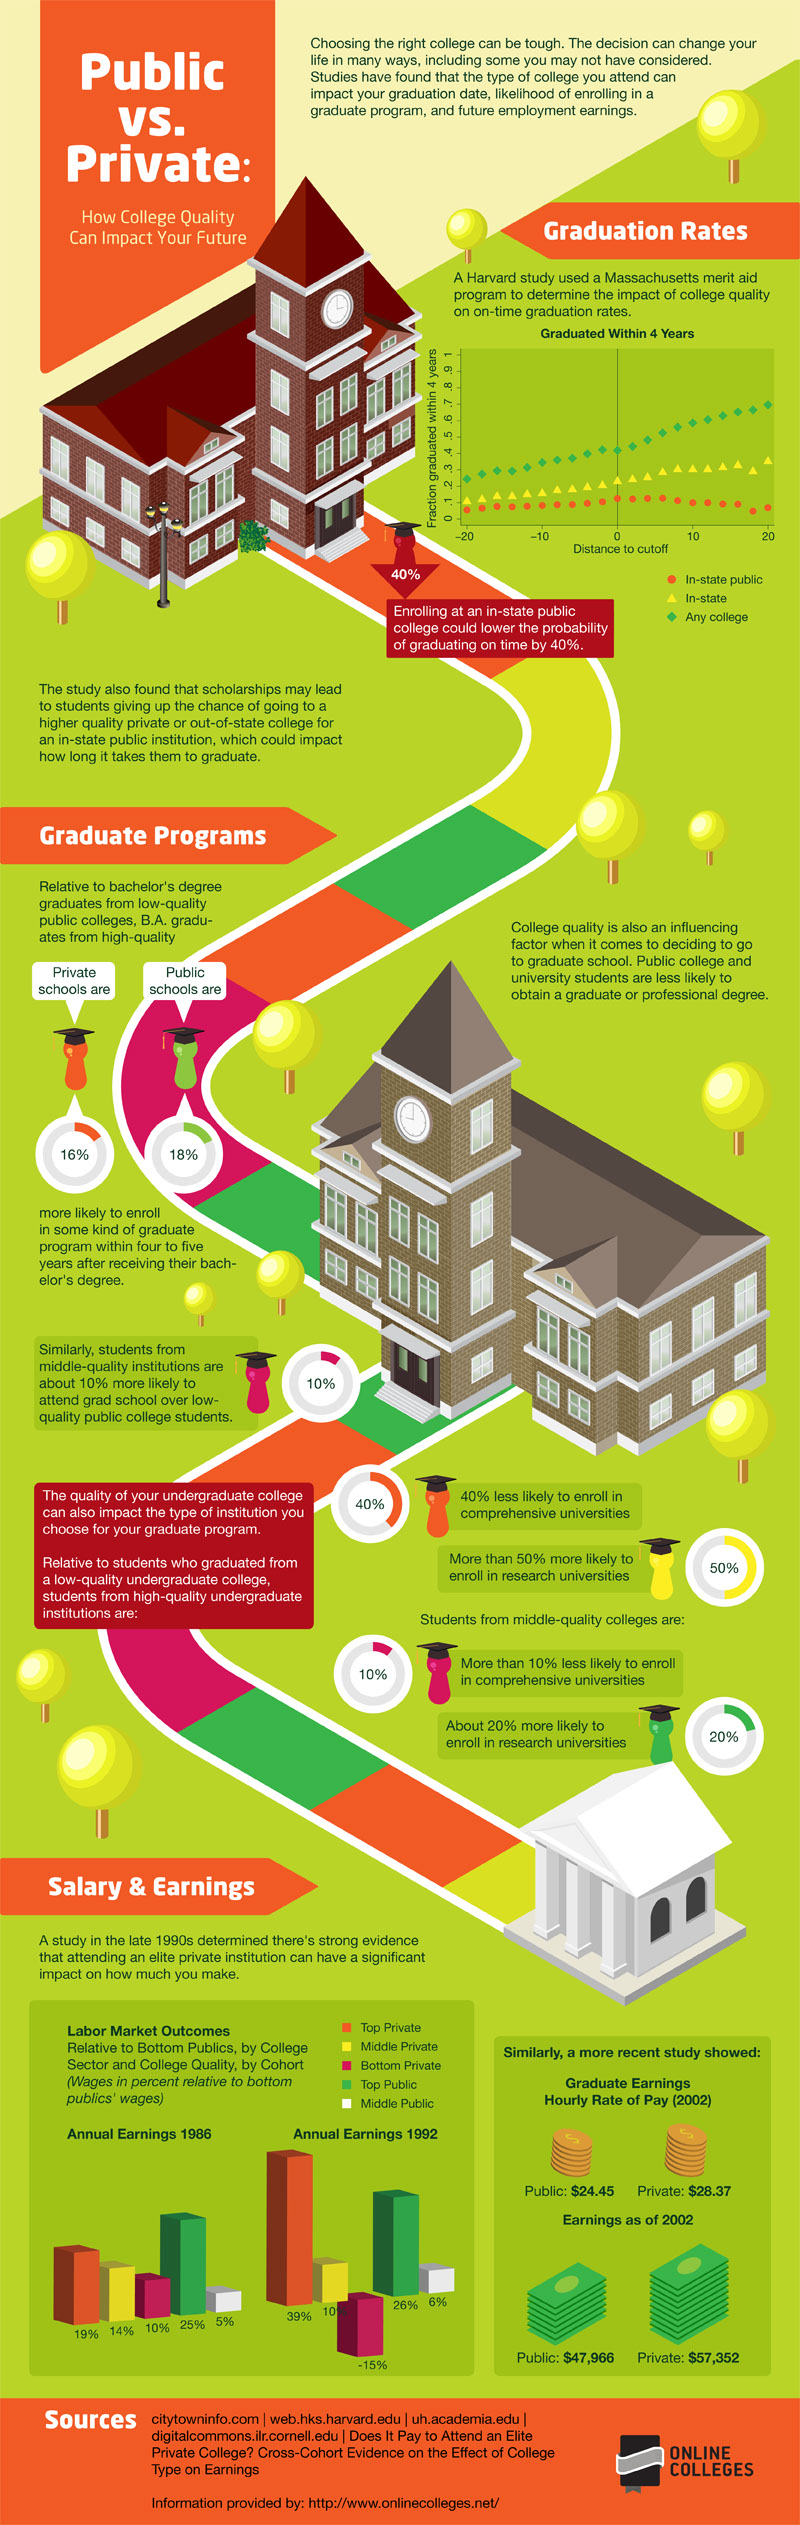 Public-Vs-Private-College-infographic